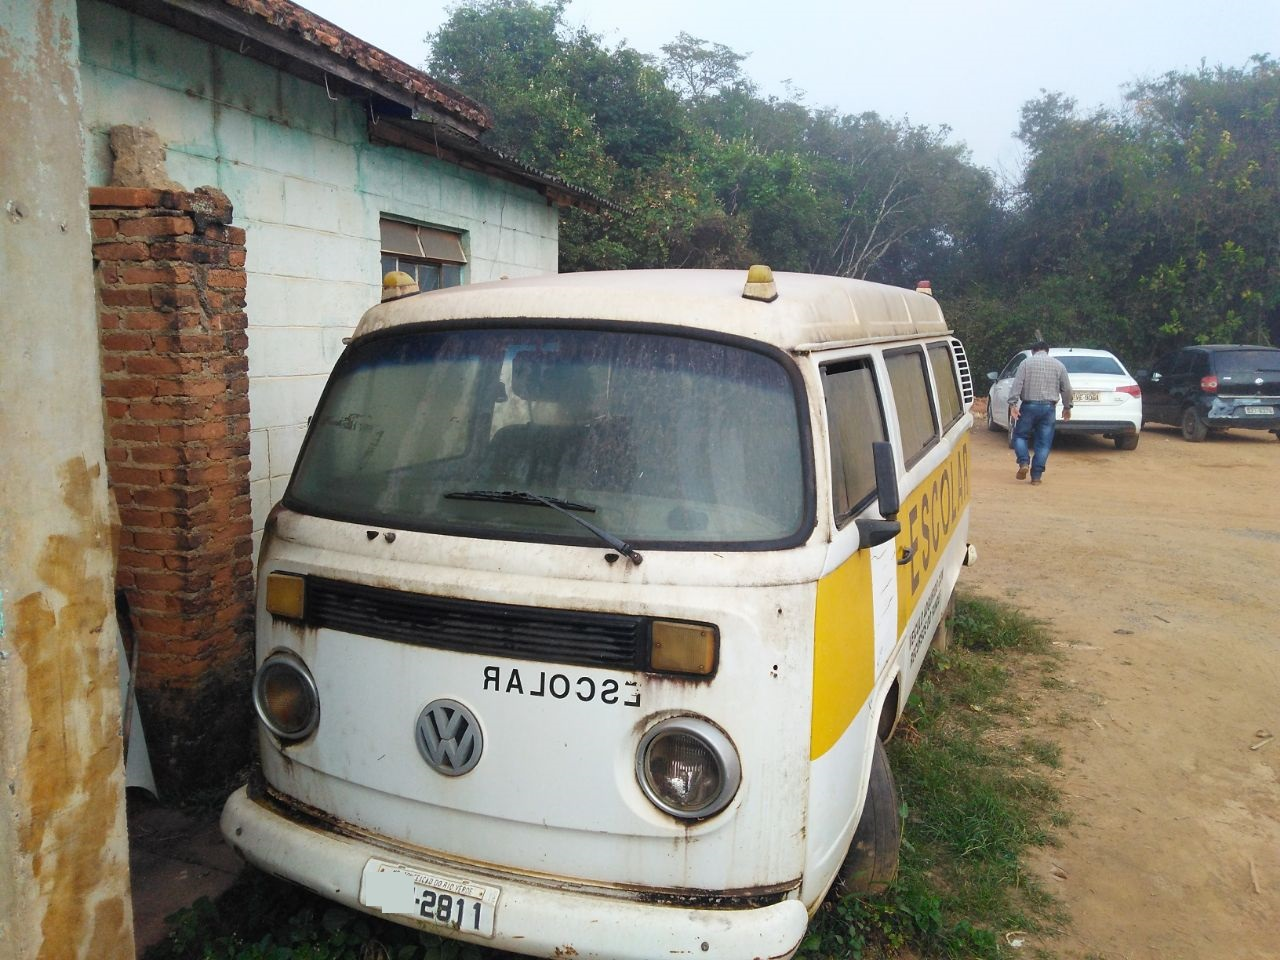 ITEM Nº: 01; ; VW Kombi Escolar, ANO: 2005/2005, PLACA: 2811, CHASSI: 359, COR: branca Co